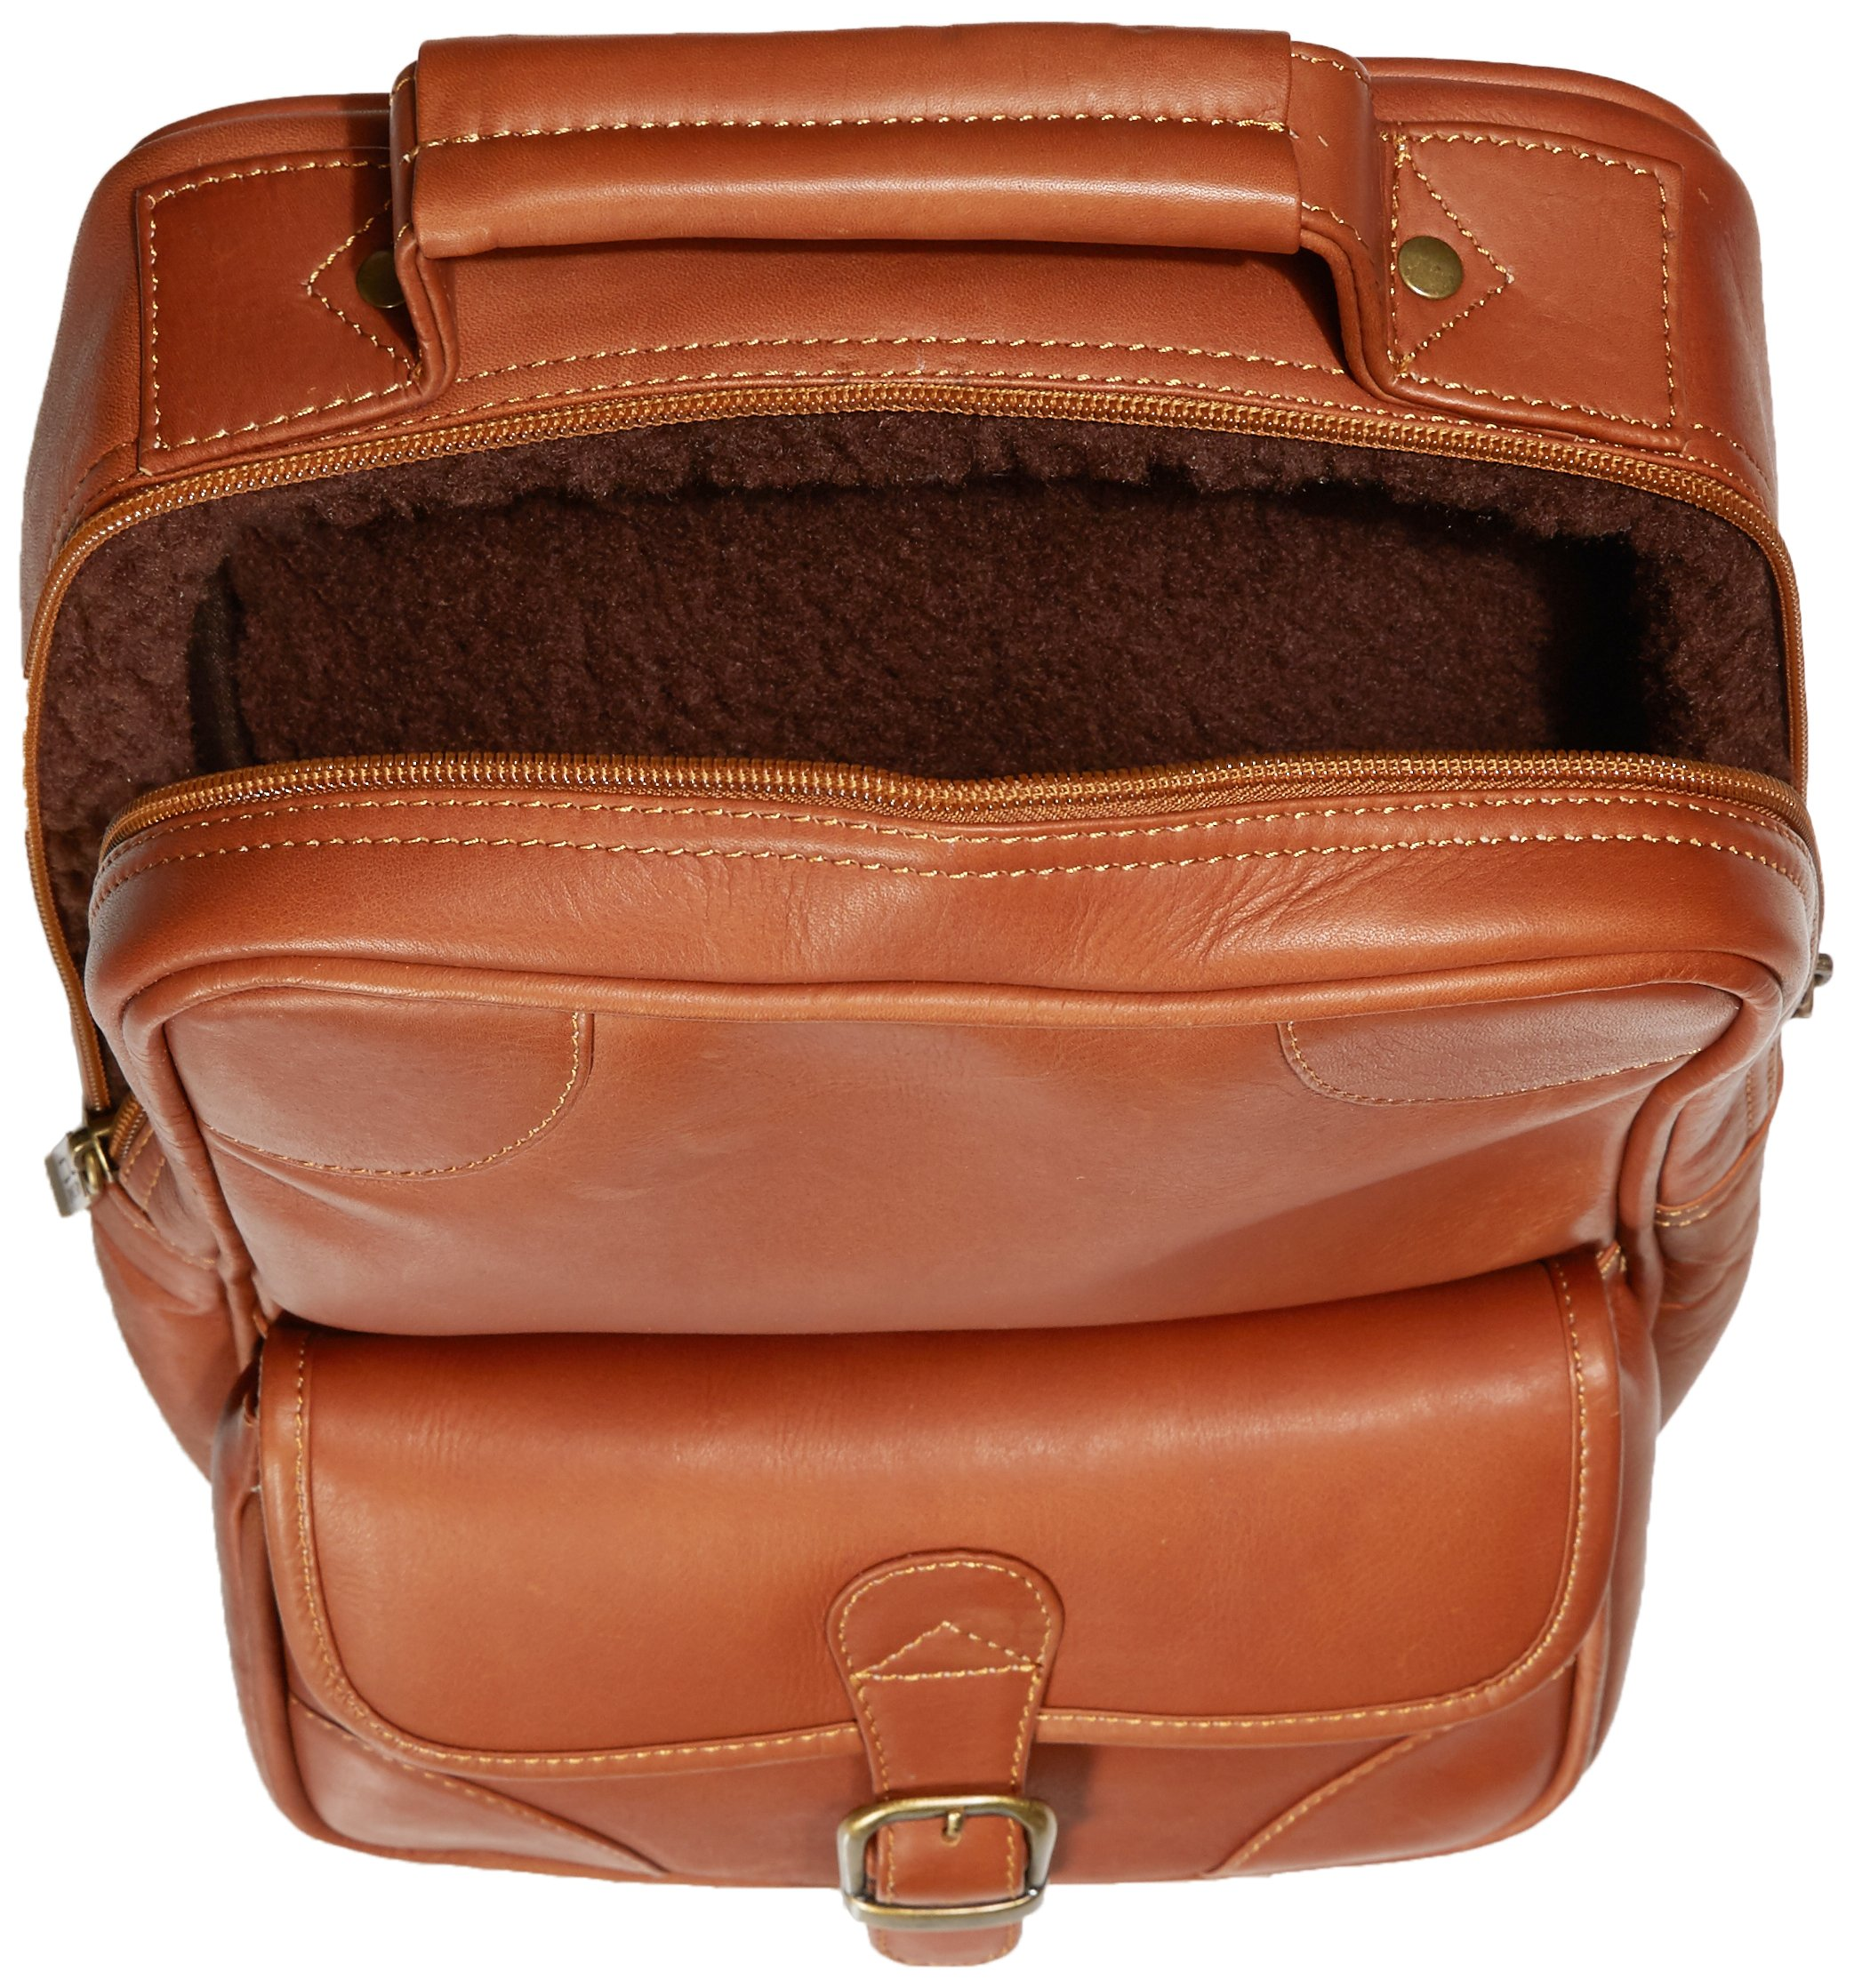 Claire Chase Upright Golf Shoe Bag, Saddle by ClaireChase (Image #5)